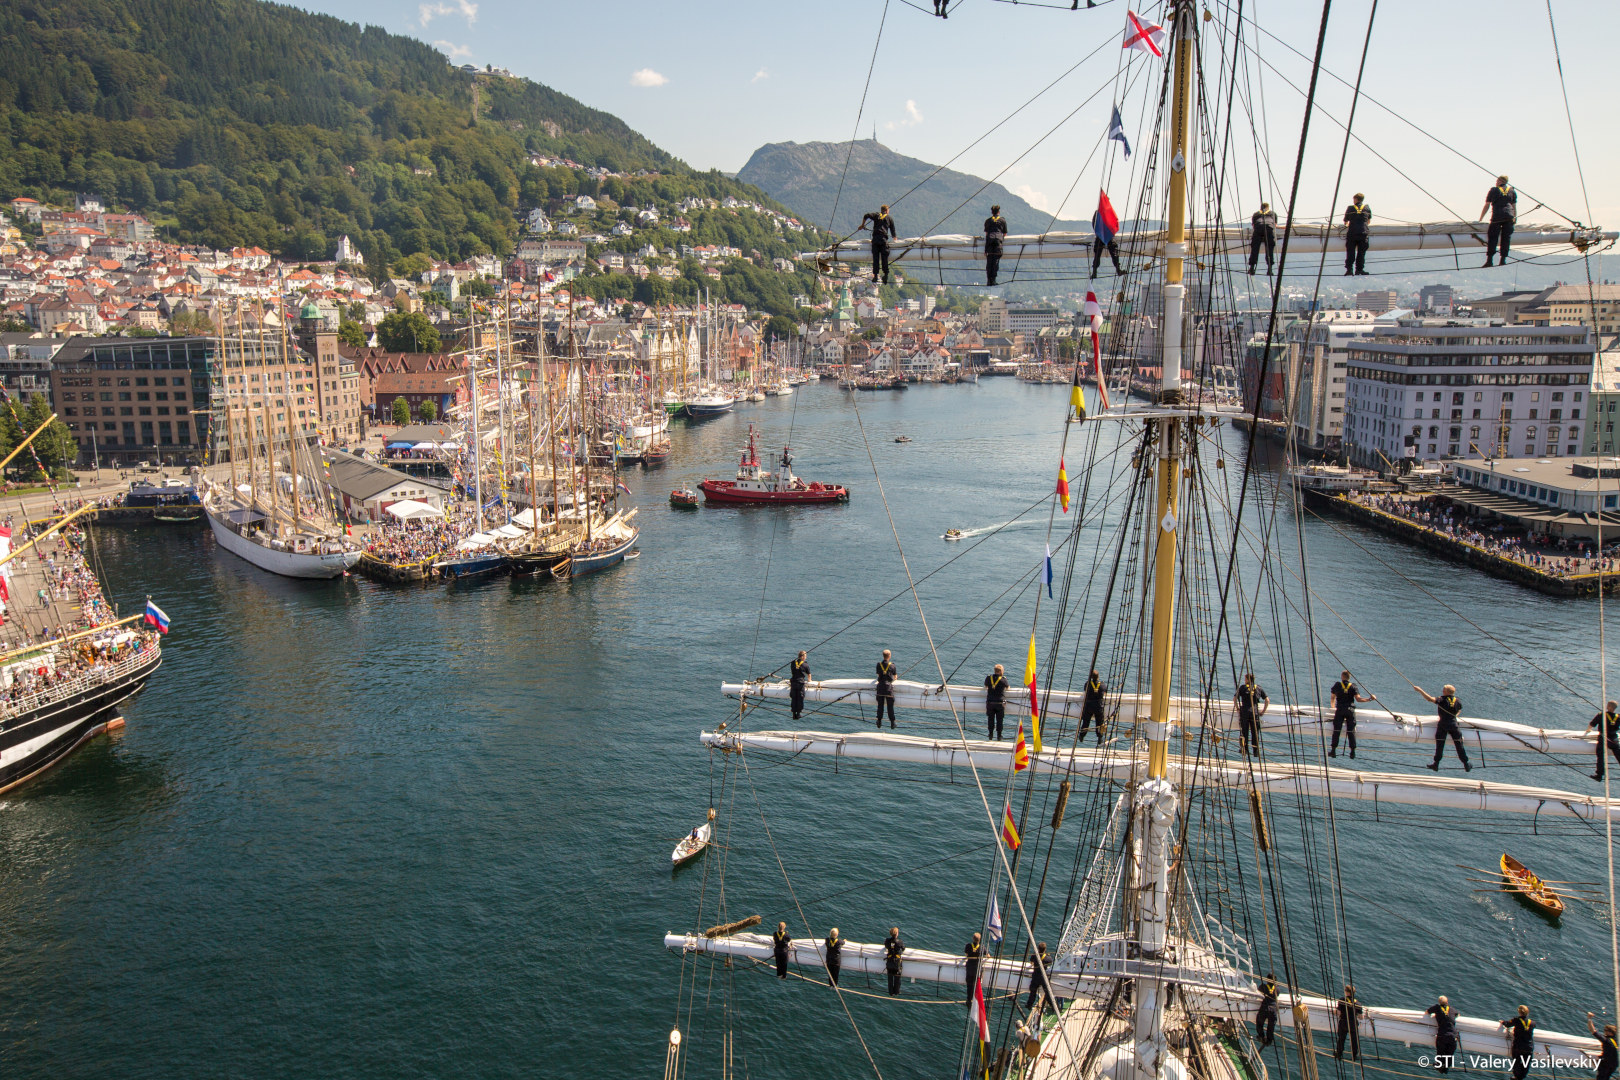 4_TallShipsRaces_4_PhotoValeryVasilevskiy